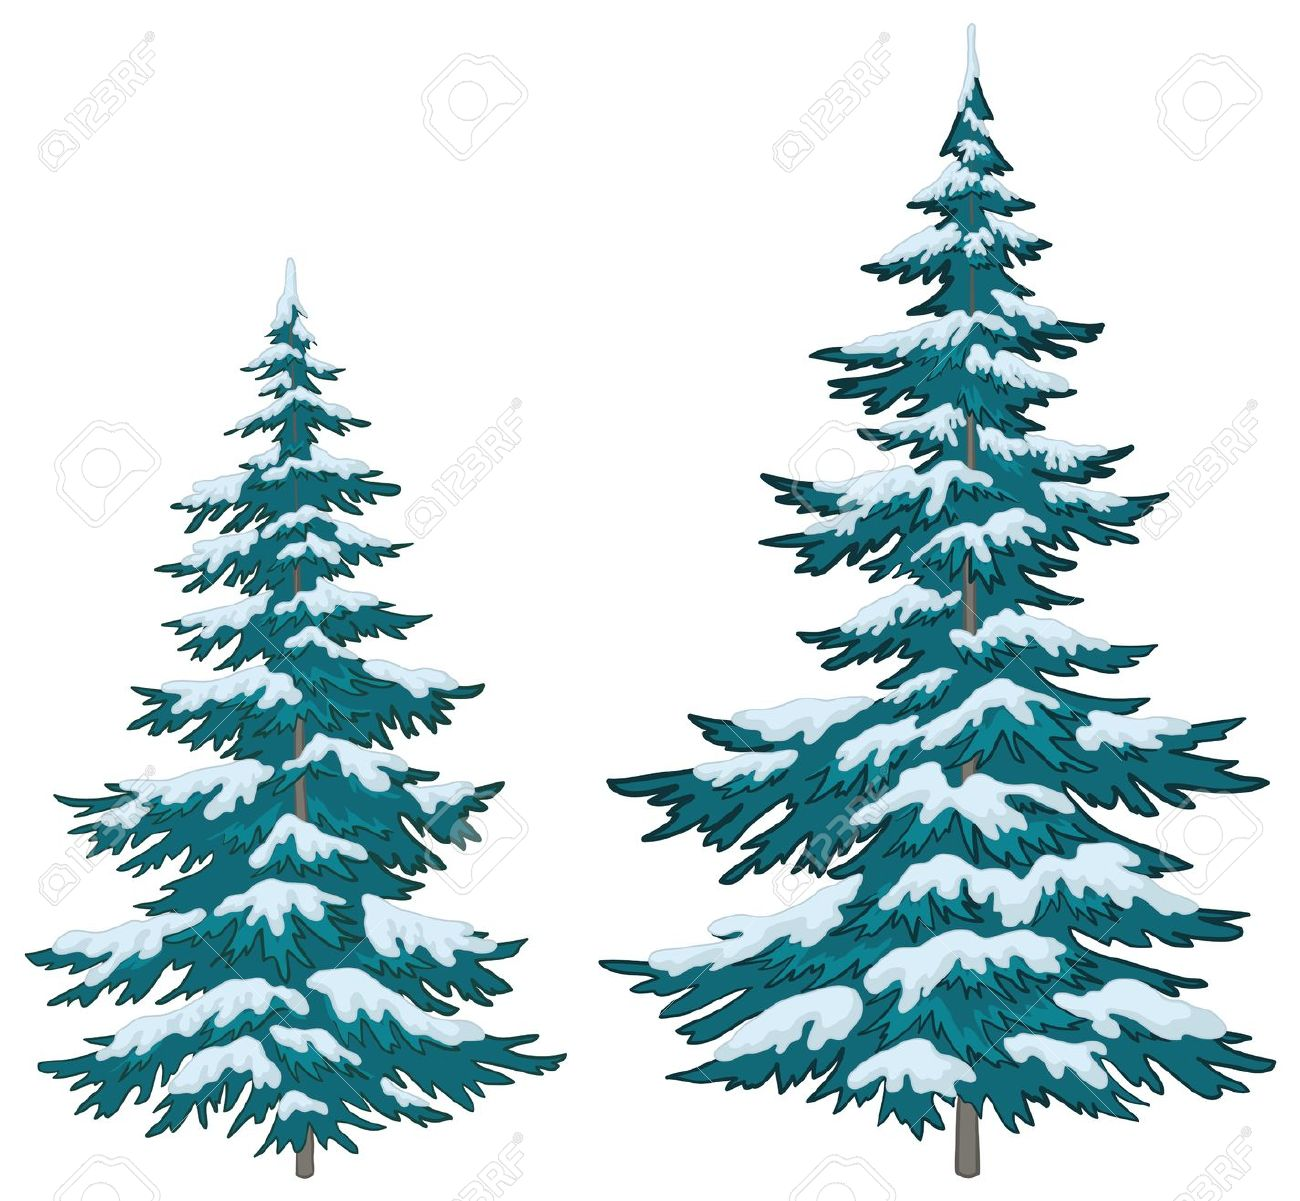 Evergreen trees in snow silhouette clipart.